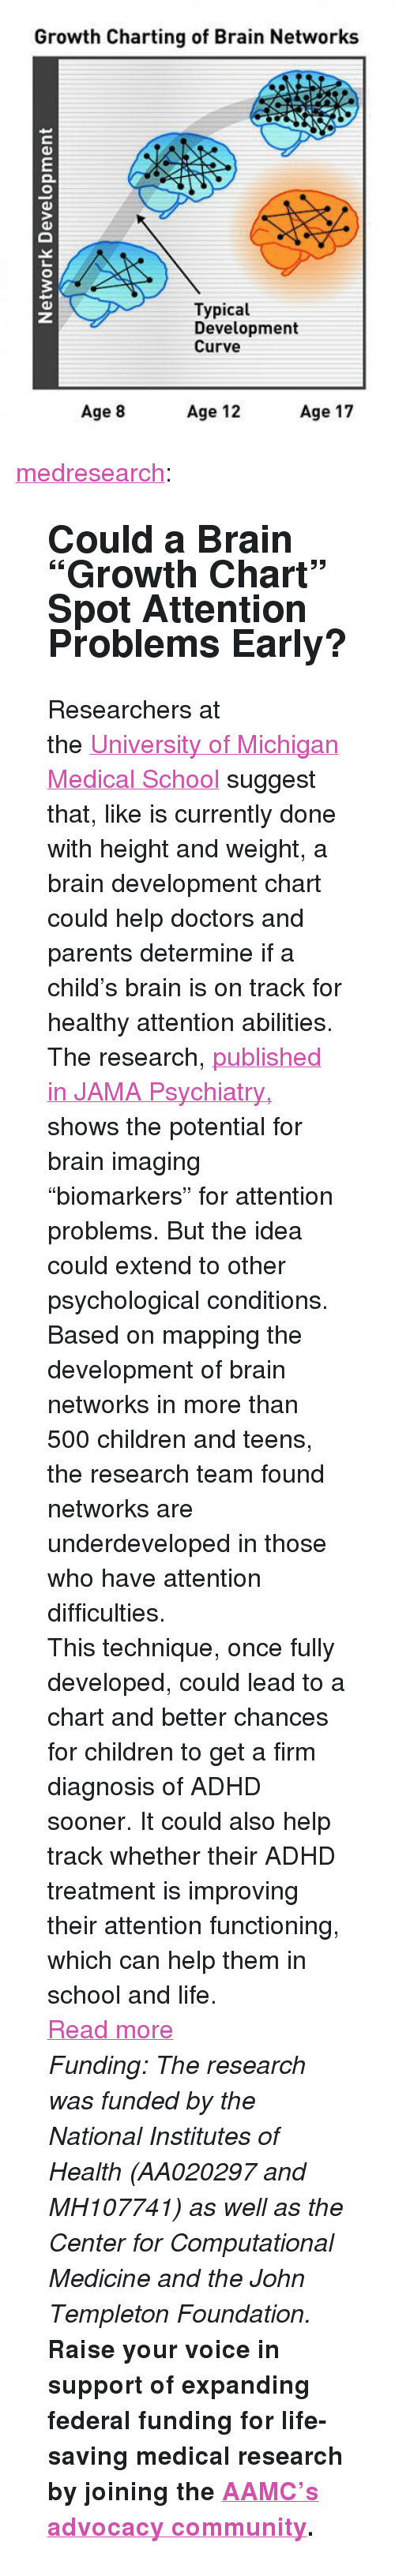 """templeton: Growth Charting of Brain Networks  Typical  Development  Curve  3  Age 8  Age 12  Age 17 <p><a href=""""http://medresearch.tumblr.com/post/143342934359/could-a-brain-growth-chart-spot-attention"""" class=""""tumblr_blog"""">medresearch</a>:</p>  <blockquote><h2> Could a Brain """"Growth Chart"""" Spot Attention Problems Early?  </h2><p>Researchers at the<a href=""""https://medicine.umich.edu/medschool/"""">University of Michigan Medical School</a>suggest that, like is currently done with height and weight, a brain development chart could help doctors and parents determine if a child's brain is on track for healthy attention abilities.</p><p>The research, <a href=""""http://archpsyc.jamanetwork.com/article.aspx?articleid=2513687"""">published in JAMA Psychiatry,</a> shows the potential for brain imaging """"biomarkers"""" for attention problems. But the idea could extend to other psychological conditions.</p><p>Based on mapping the development of brain networks in more than 500 children and teens, the research team found networks are underdeveloped in those who have attention  difficulties.</p><p>This technique, once fully developed, could lead to a chart and better chances for  children to get a firm diagnosis of ADHD sooner. It could also help  track whether their ADHD treatment is improving their attention  functioning, which can help them in school and life.</p><p><a href=""""http://The%20research,%20published%20in%20JAMA%20Psychiatry,%20shows%20the%20potential%20for%20brain%20imaging%20%E2%80%9Cbiomarkers%E2%80%9D%20for%20attention%20problems.%20But%20the%20idea%20could%20extend%20to%20other%20psychological%20conditions."""">Read more</a></p><p><i>Funding: The research was funded by the National Institutes of Health  (AA020297 and MH107741) as well as the Center for Computational Medicine  and the John Templeton Foundation.</i></p><p>  <b>Raise your voice in support of expanding federal funding for life-saving medical research by joining the </b><b><a href=""""http://t.umblr.com/redirect?z=http%"""